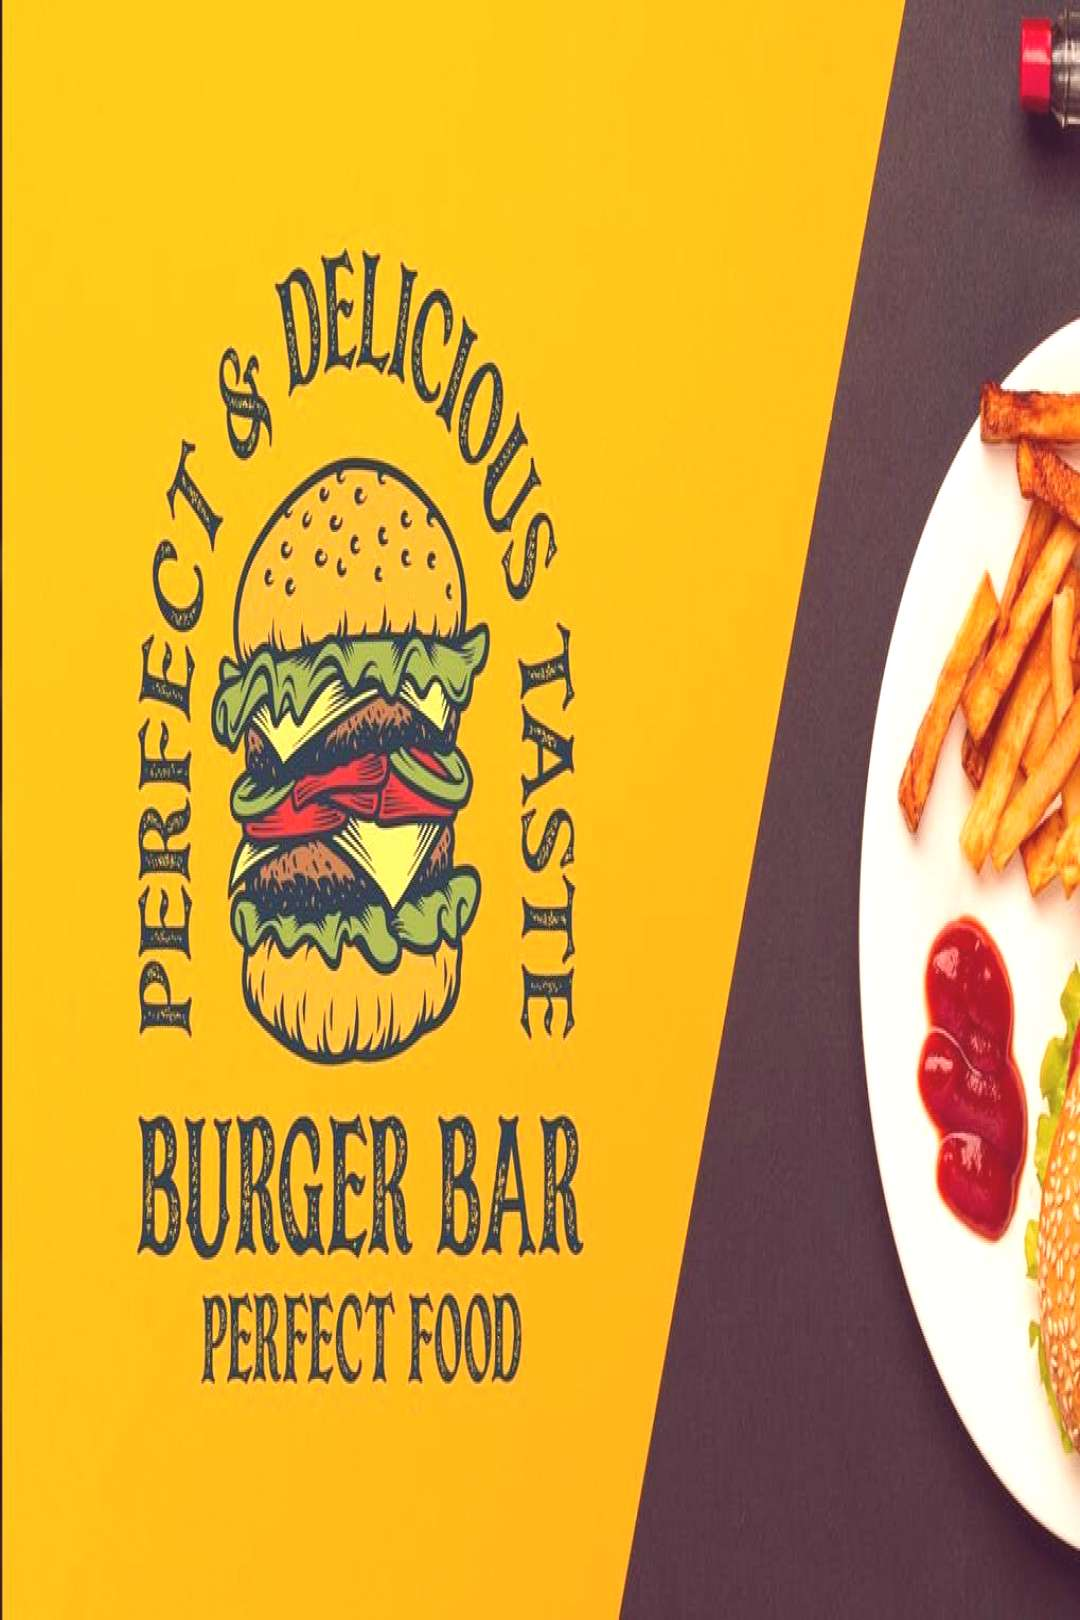 Burger Bar Vintage Logo Template by Blankids on Envato Elements